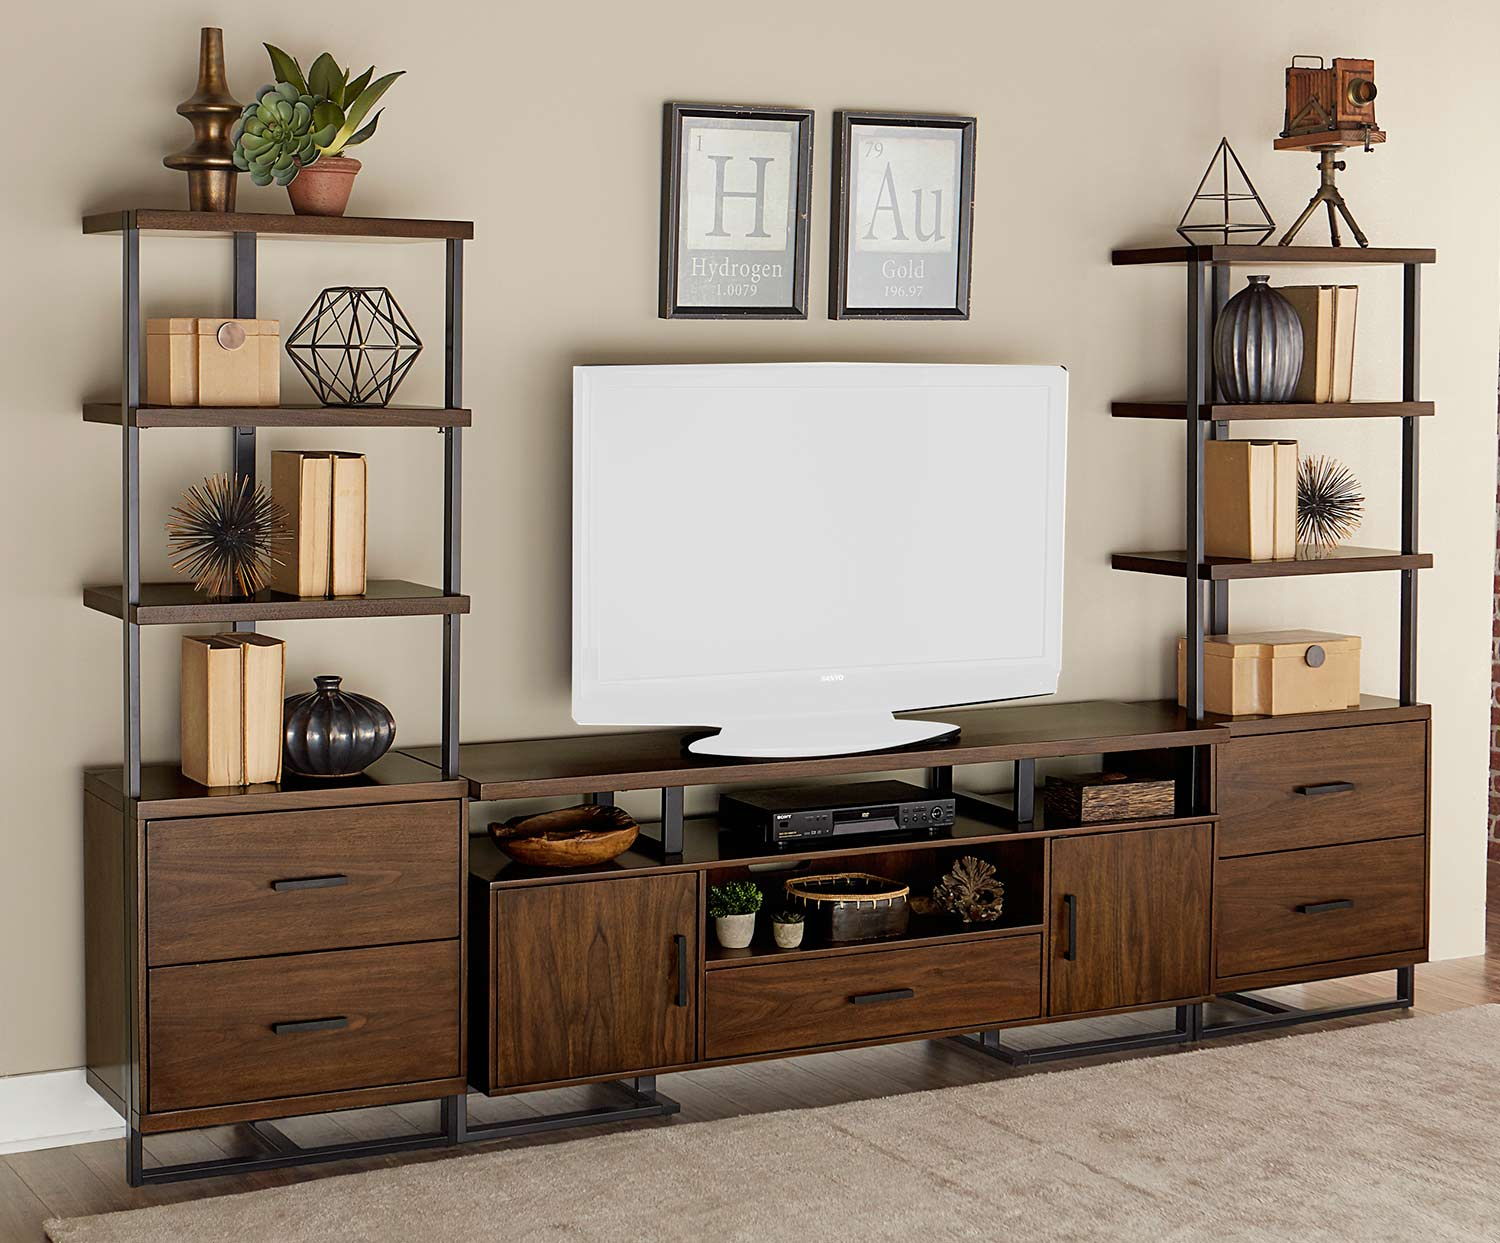 Homelegance Sedley 68-inch Entertainment Collection - Walnut Veneer